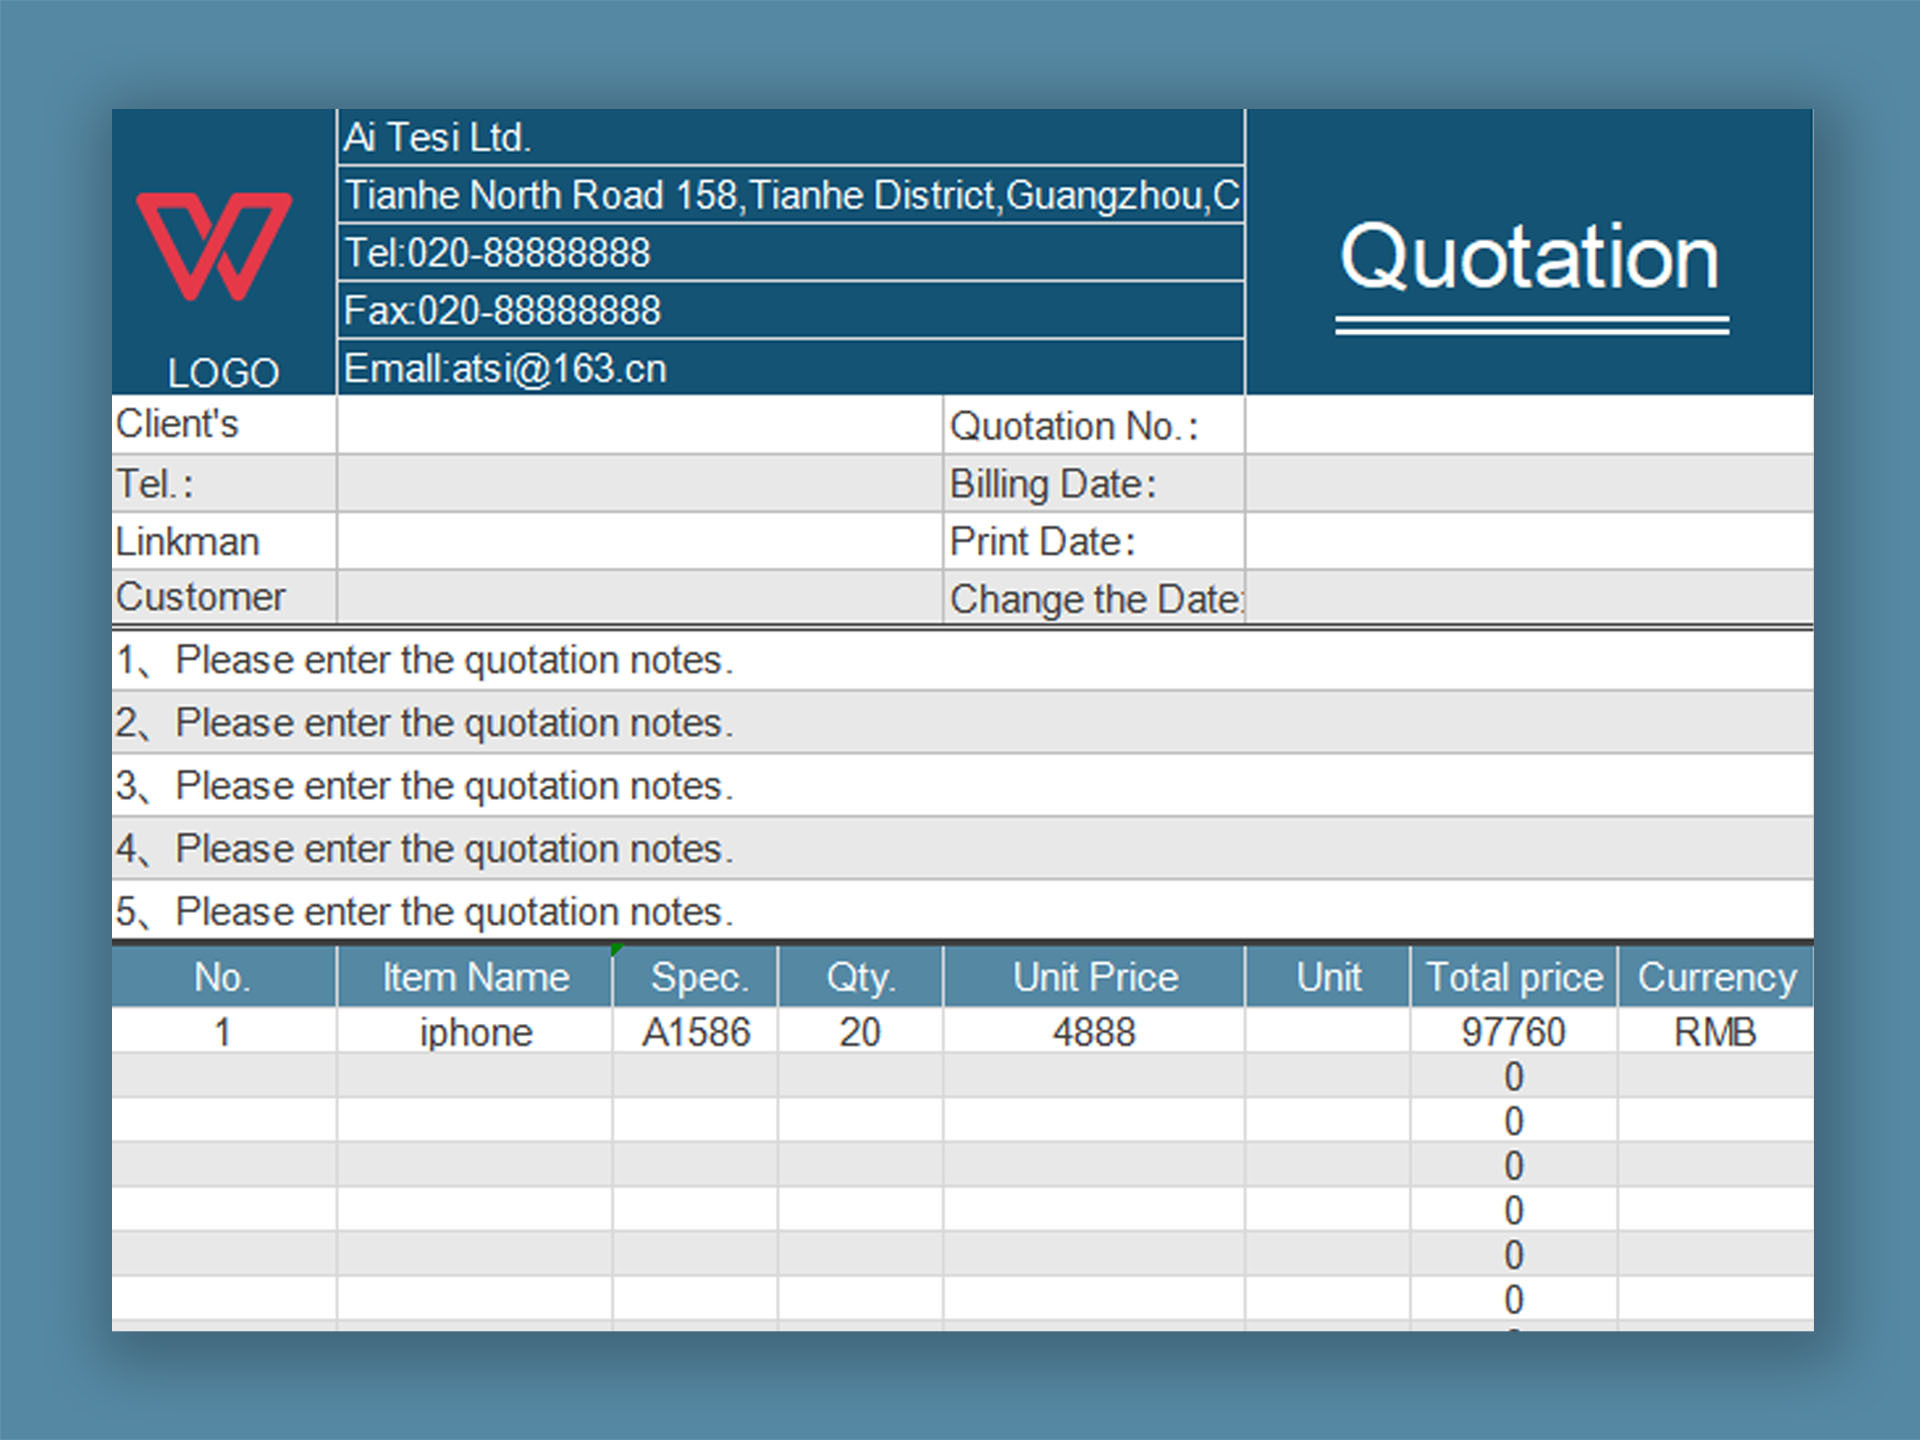 Free Quotation Template from d4z1onkegyrs5.cloudfront.net